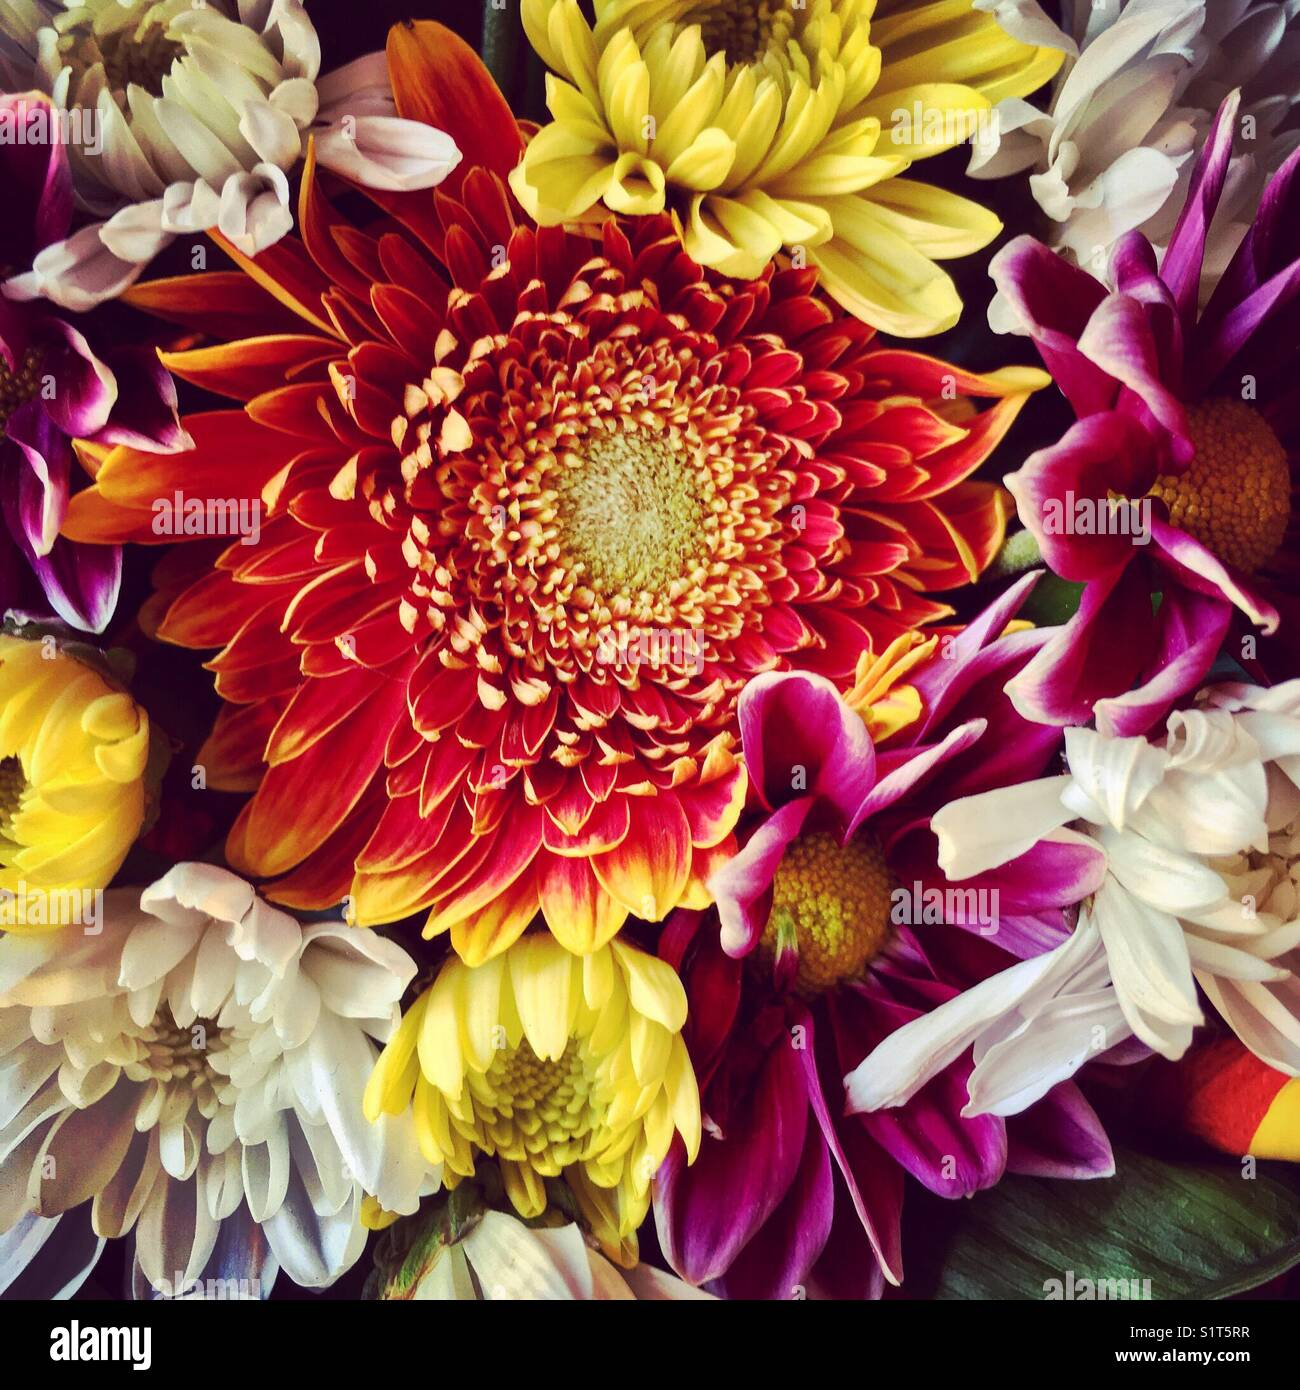 Colorful flowers Stock Photo: 310932715 - Alamy